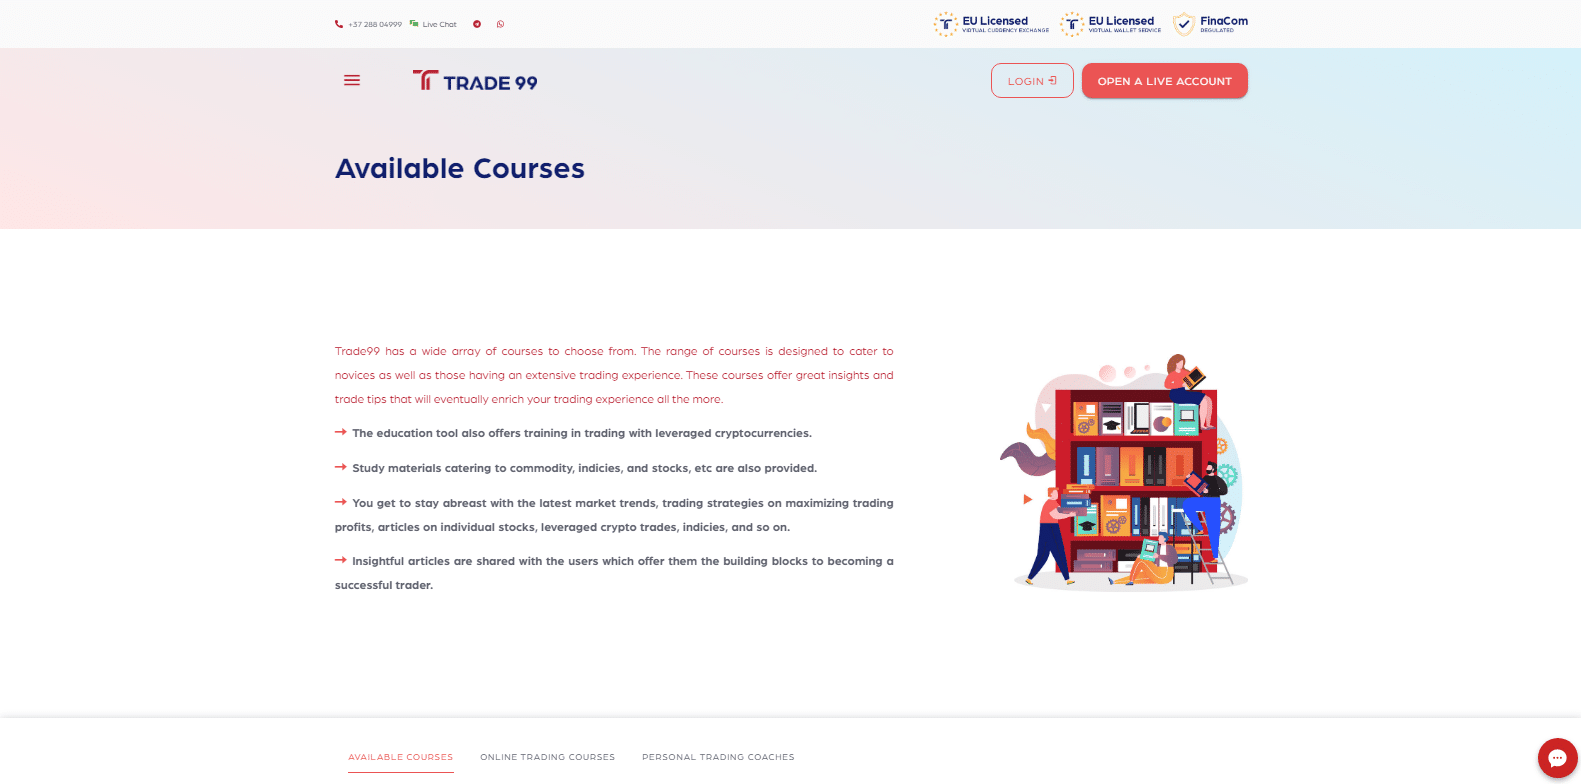 Courses Available at Trade99